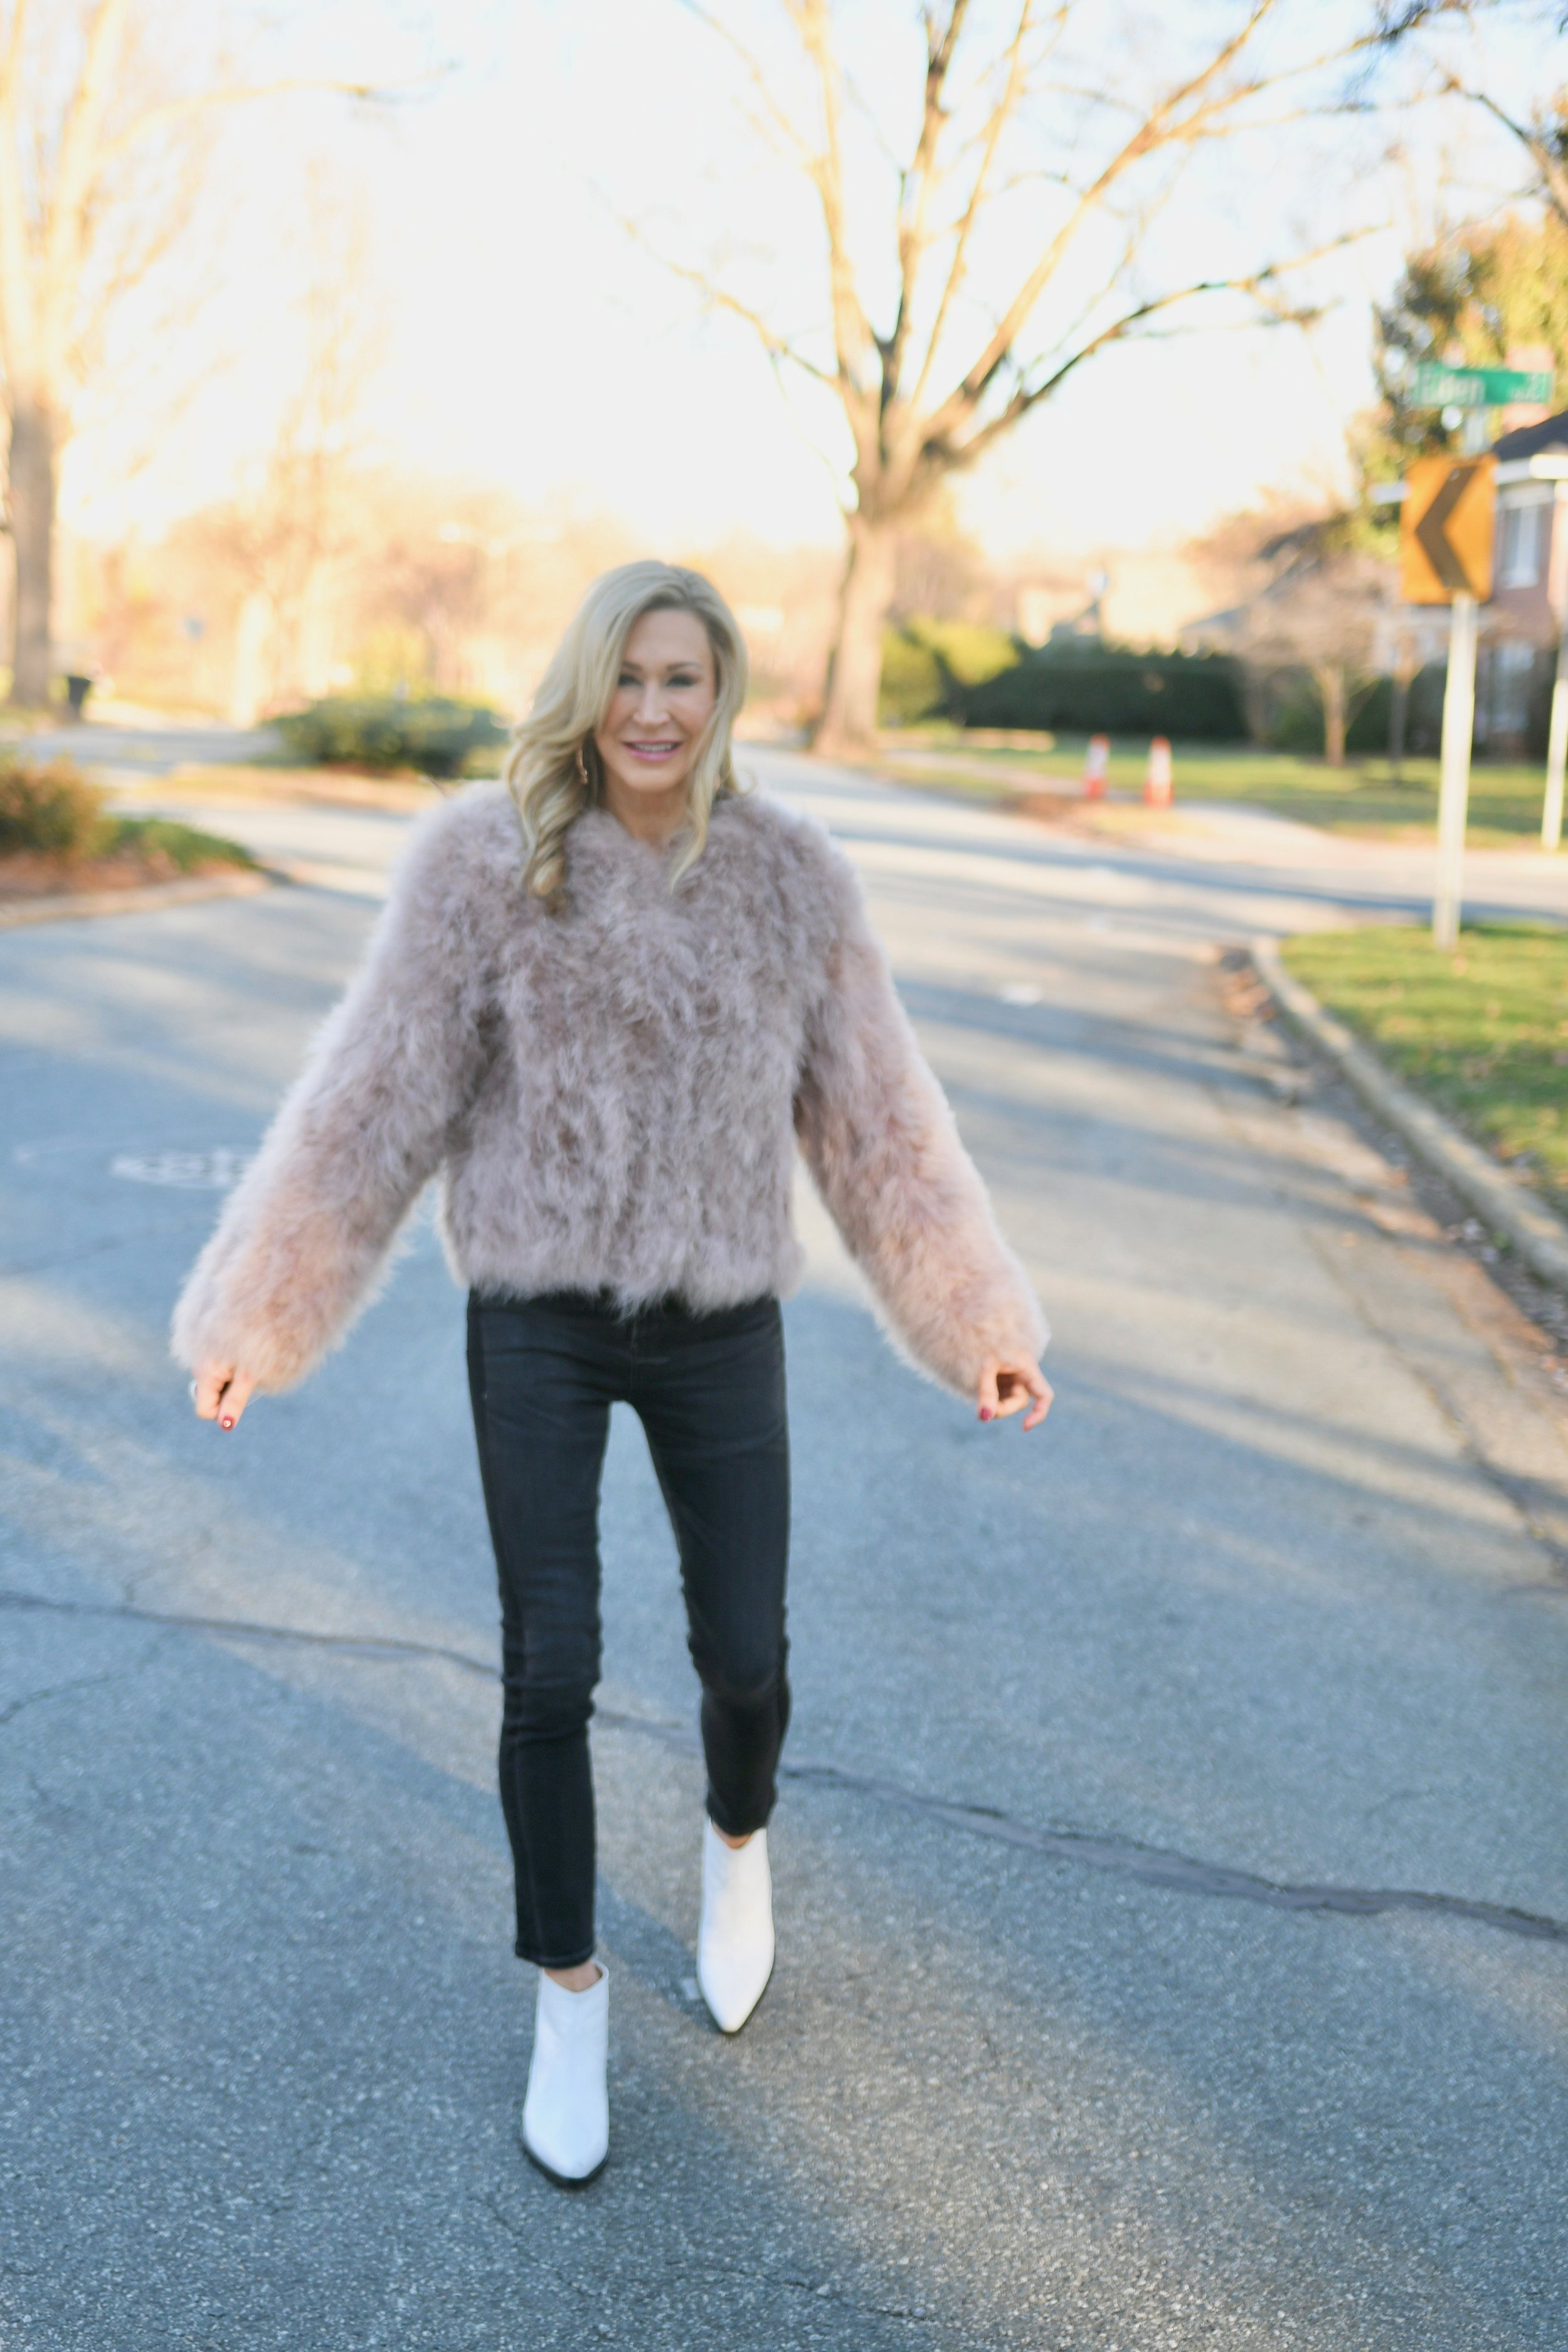 White Cowboy booties with Fur Jacket